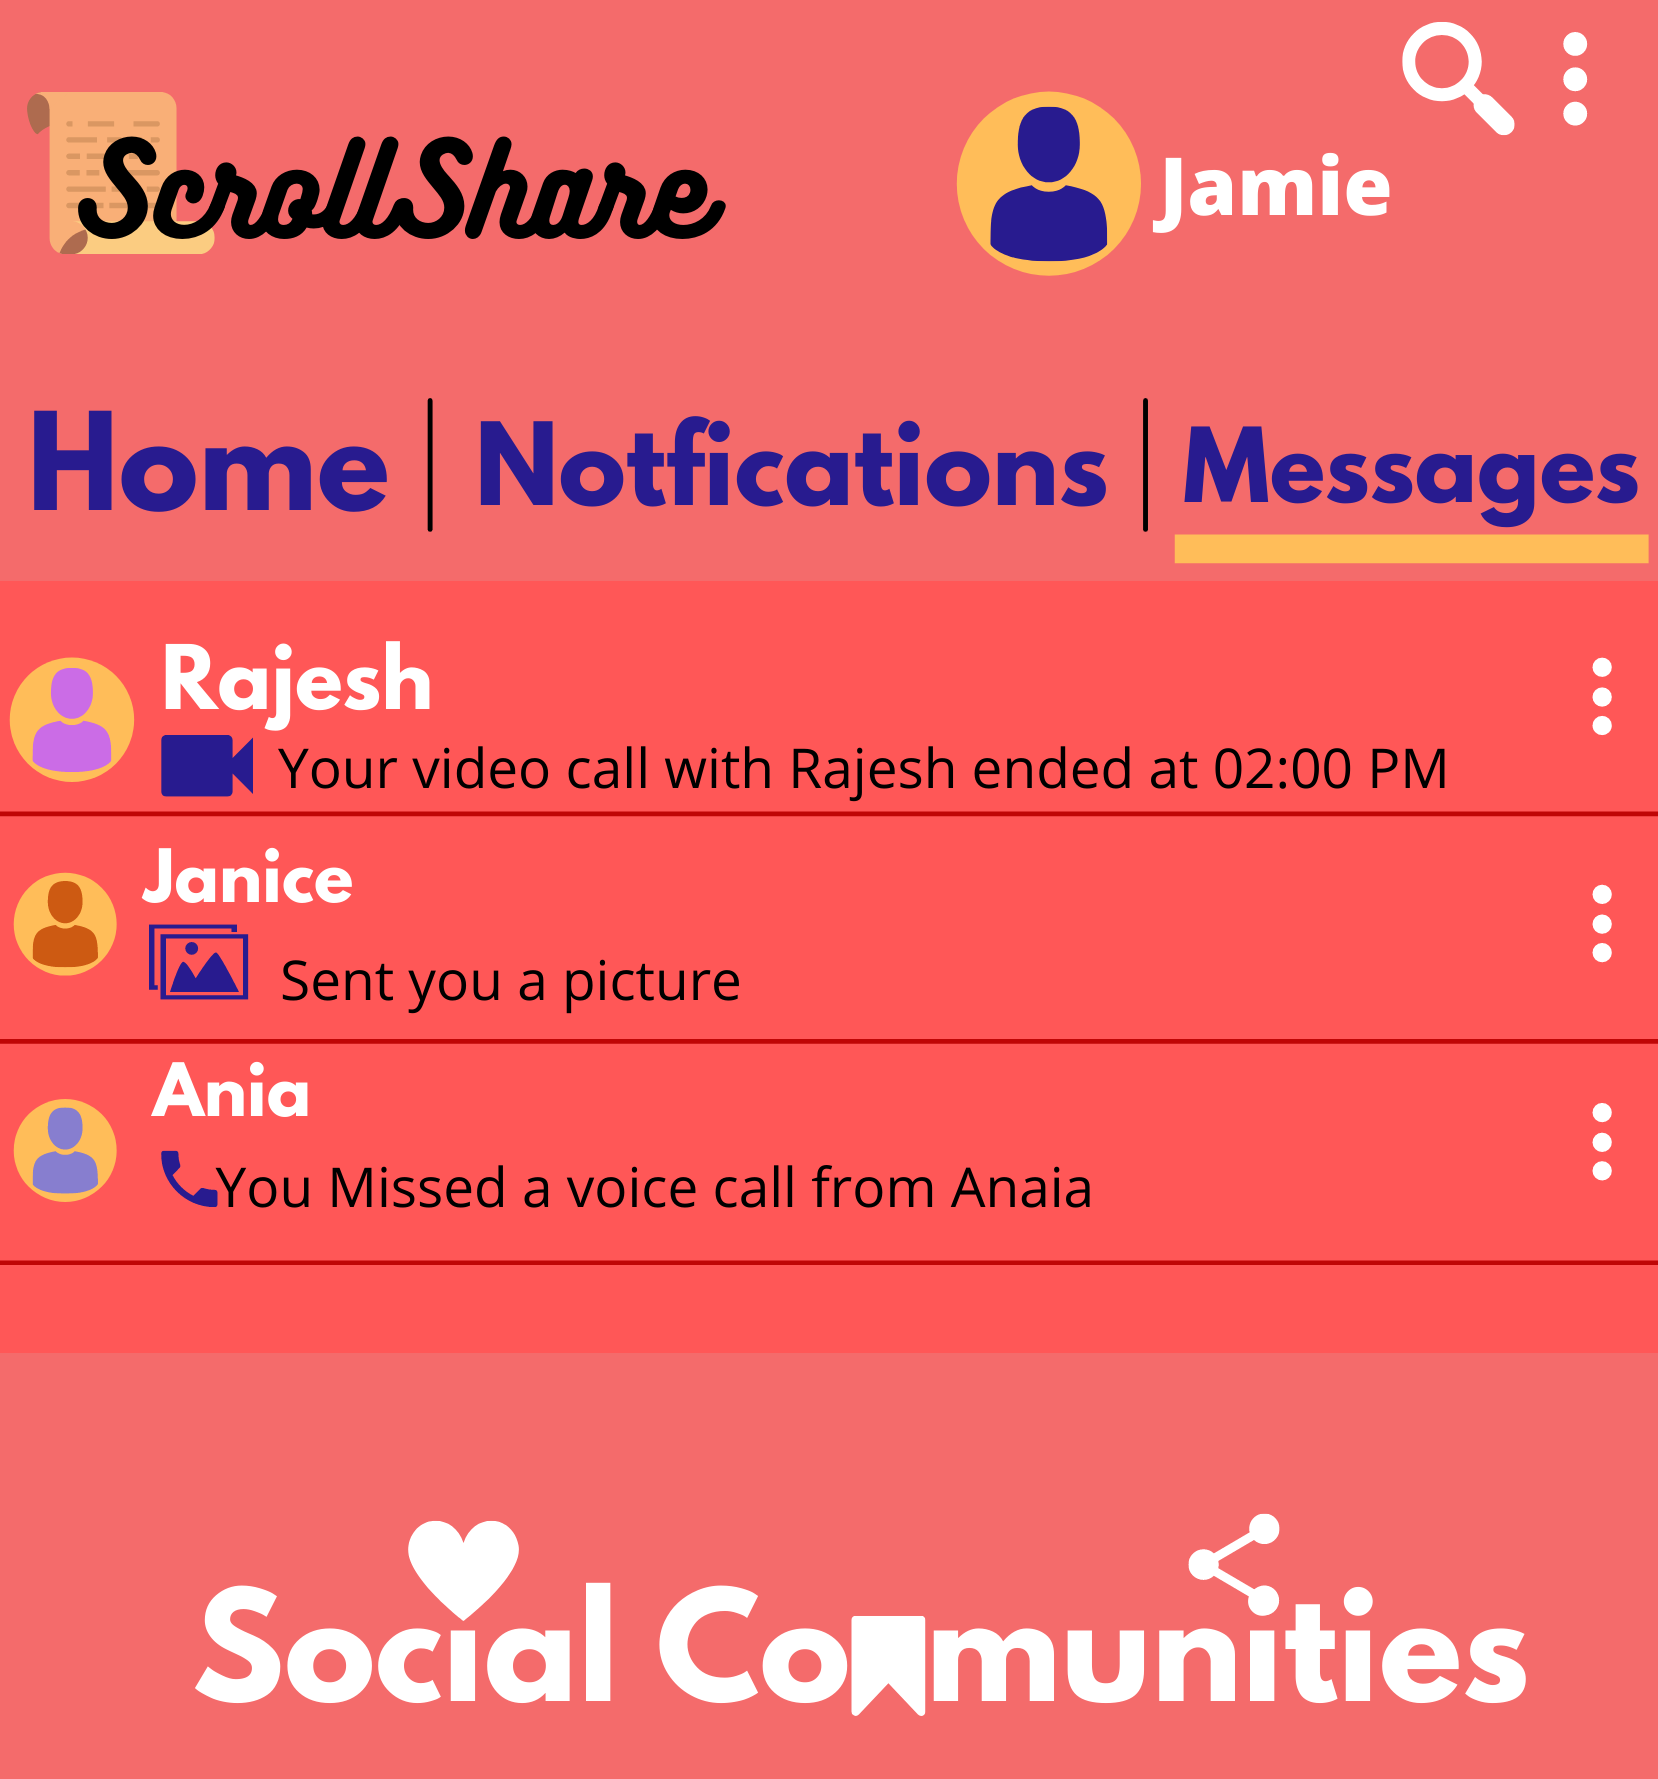 Image of chat on social community app